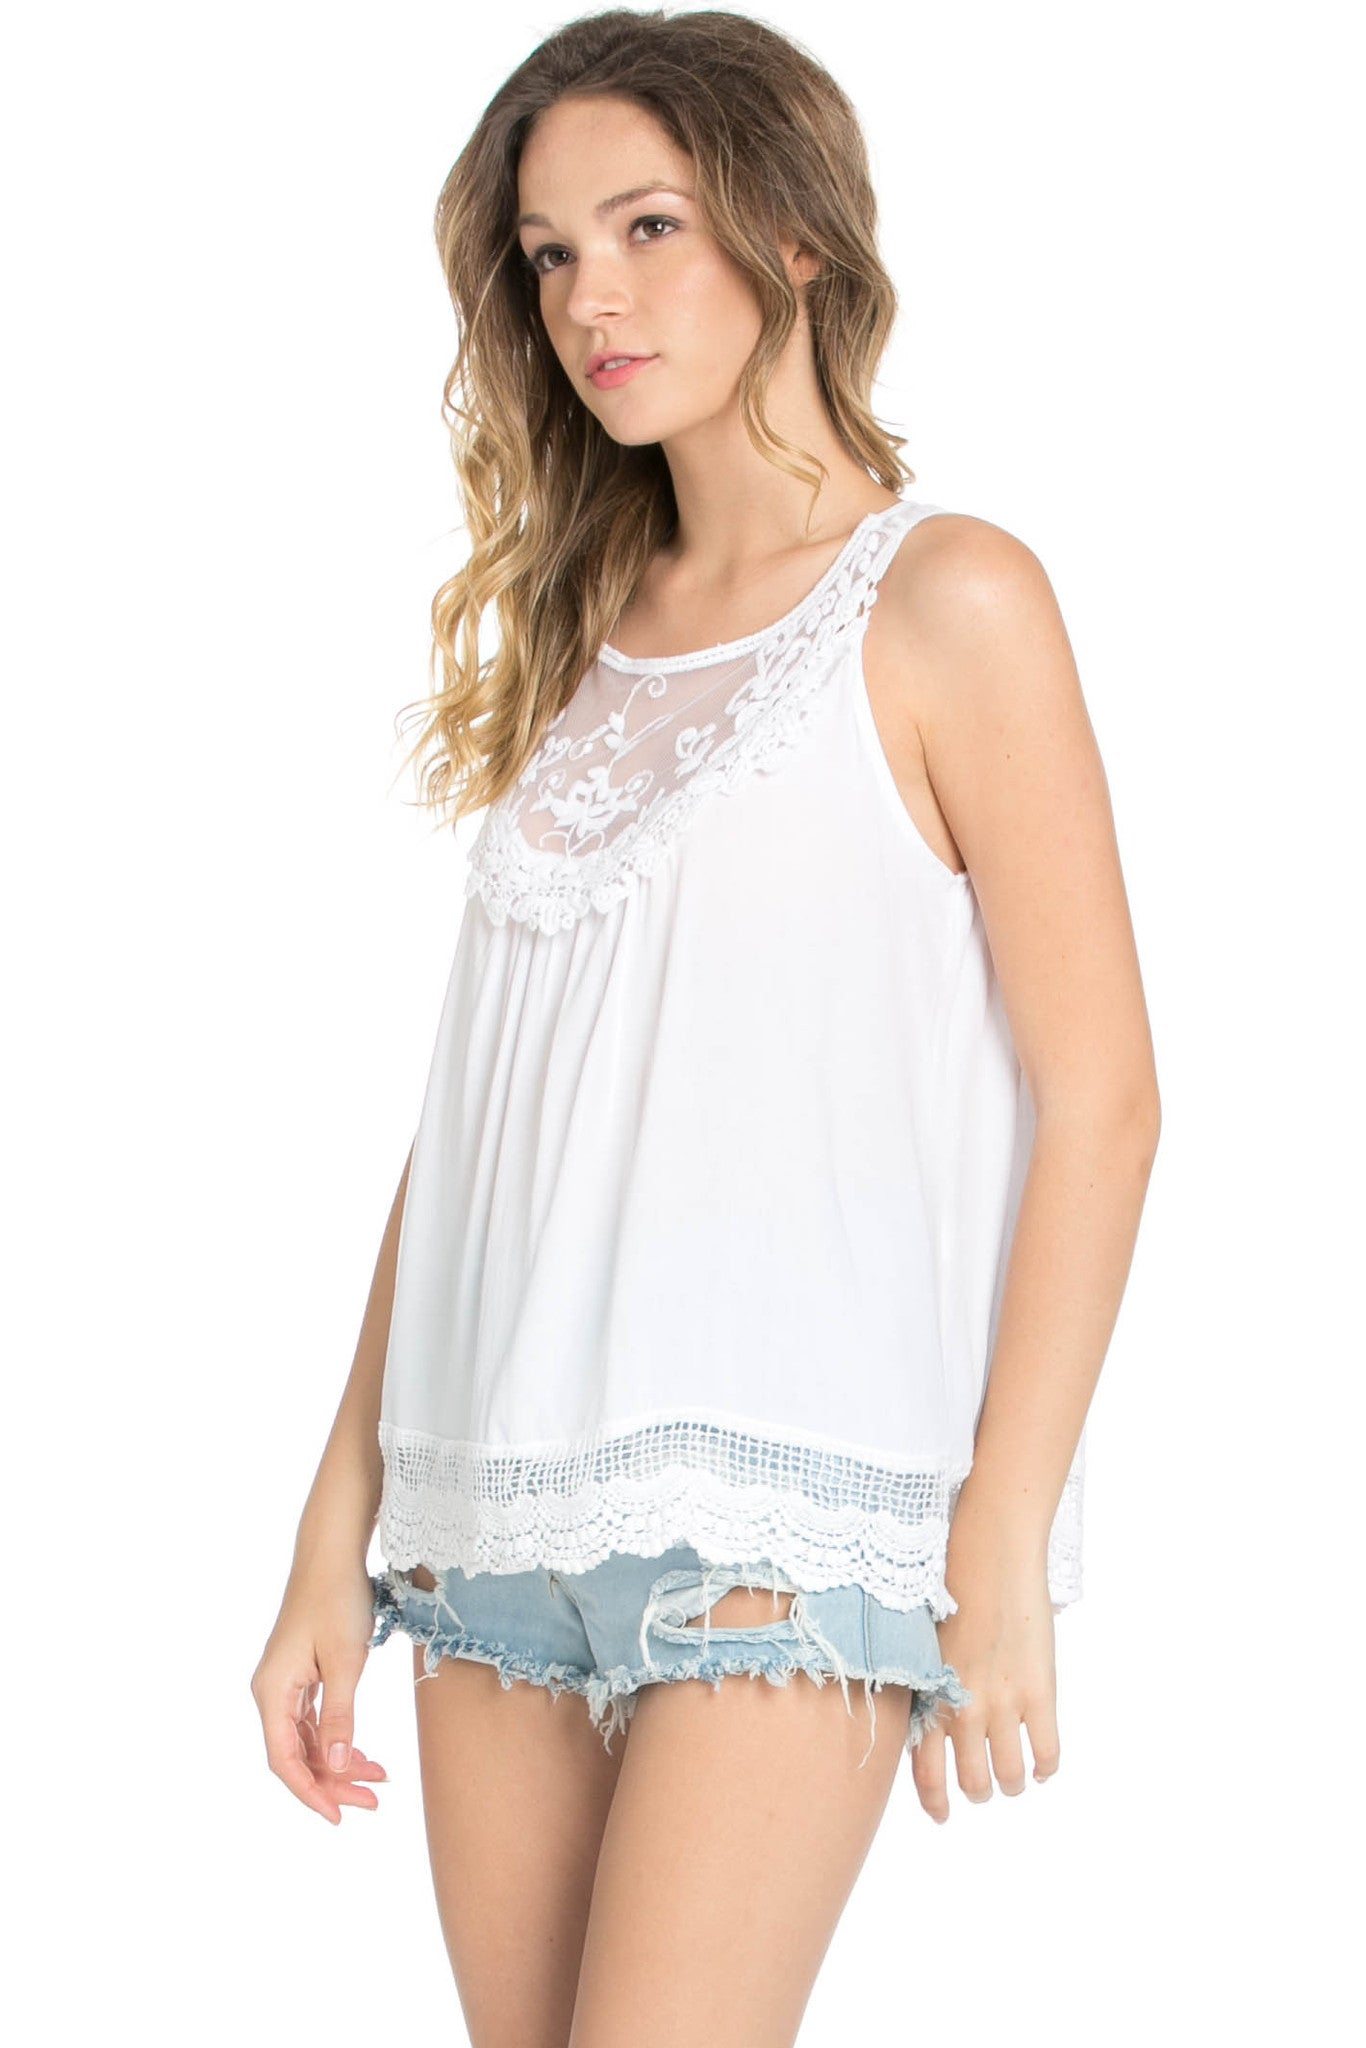 Crochets and Lace Ivory Top - Tops - My Yuccie - 6